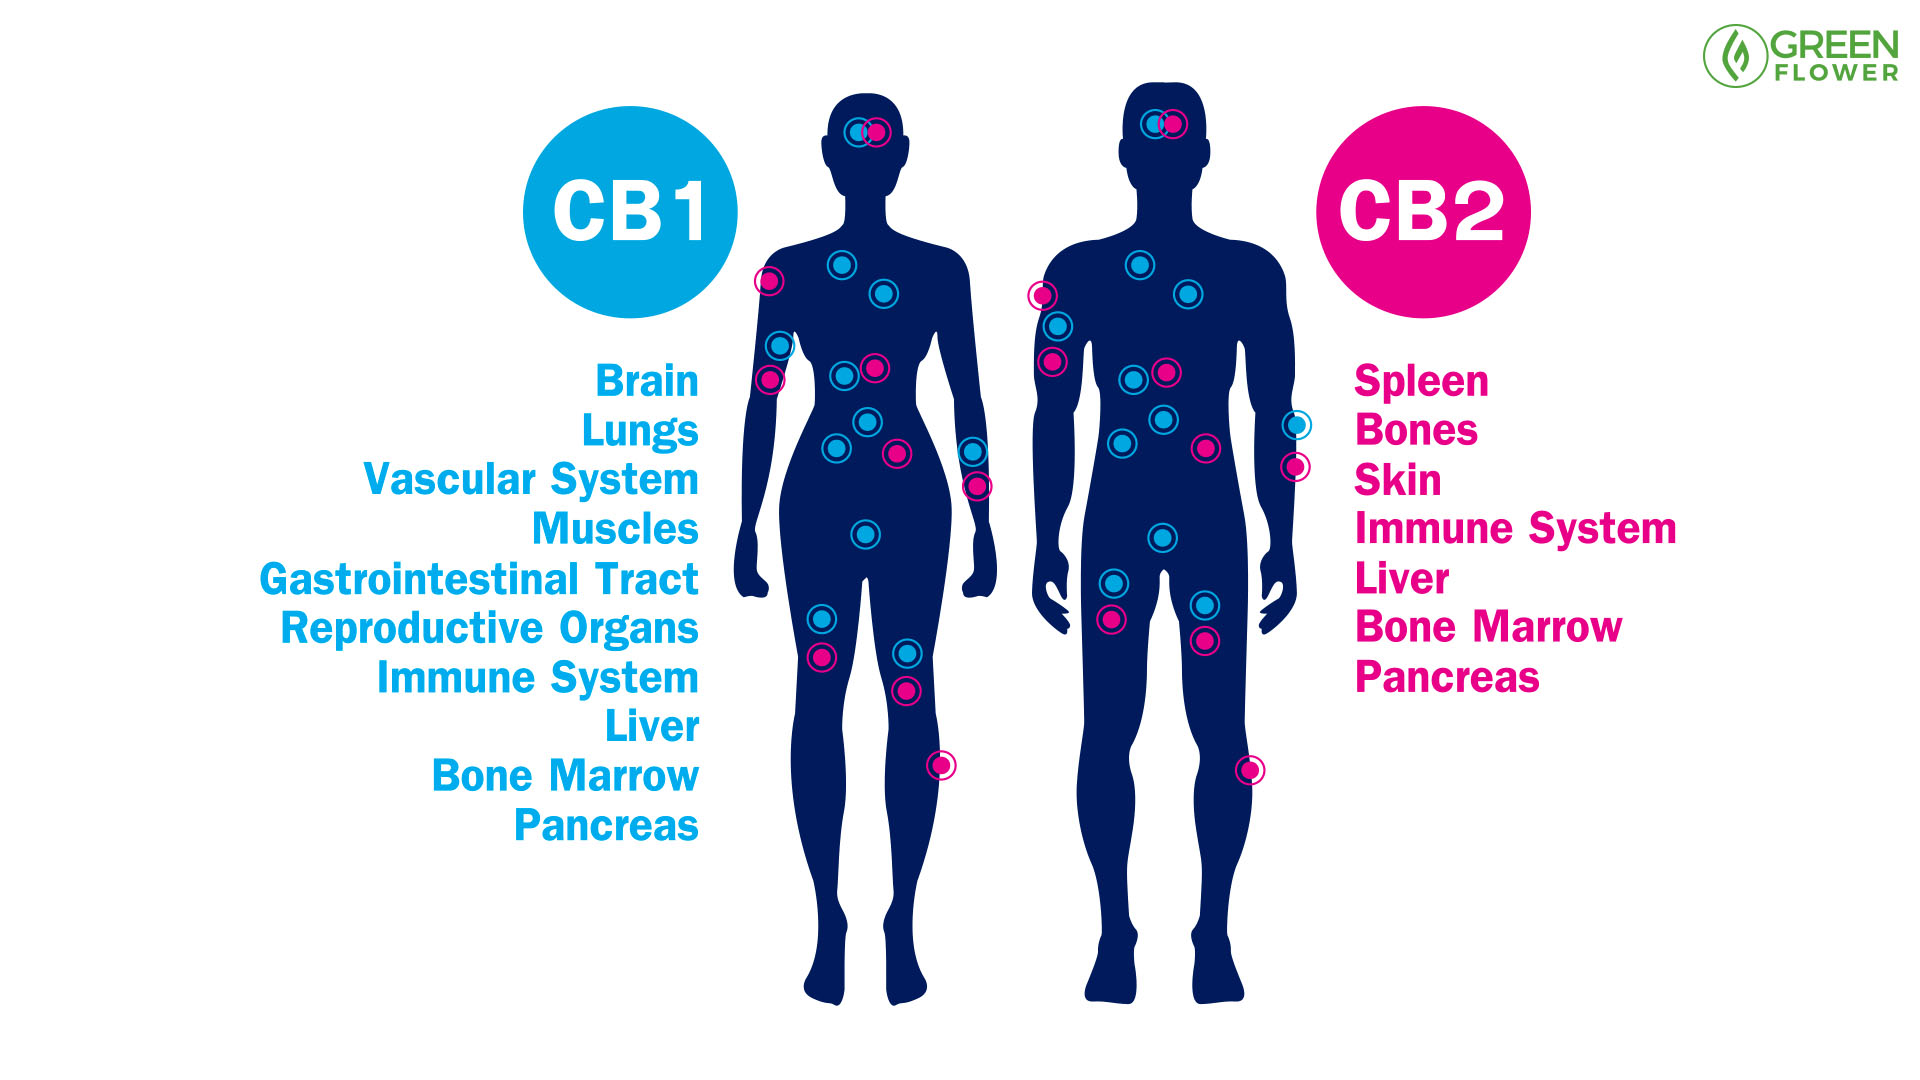 infographic showing CB1 & CB2 receptor sites in the human body